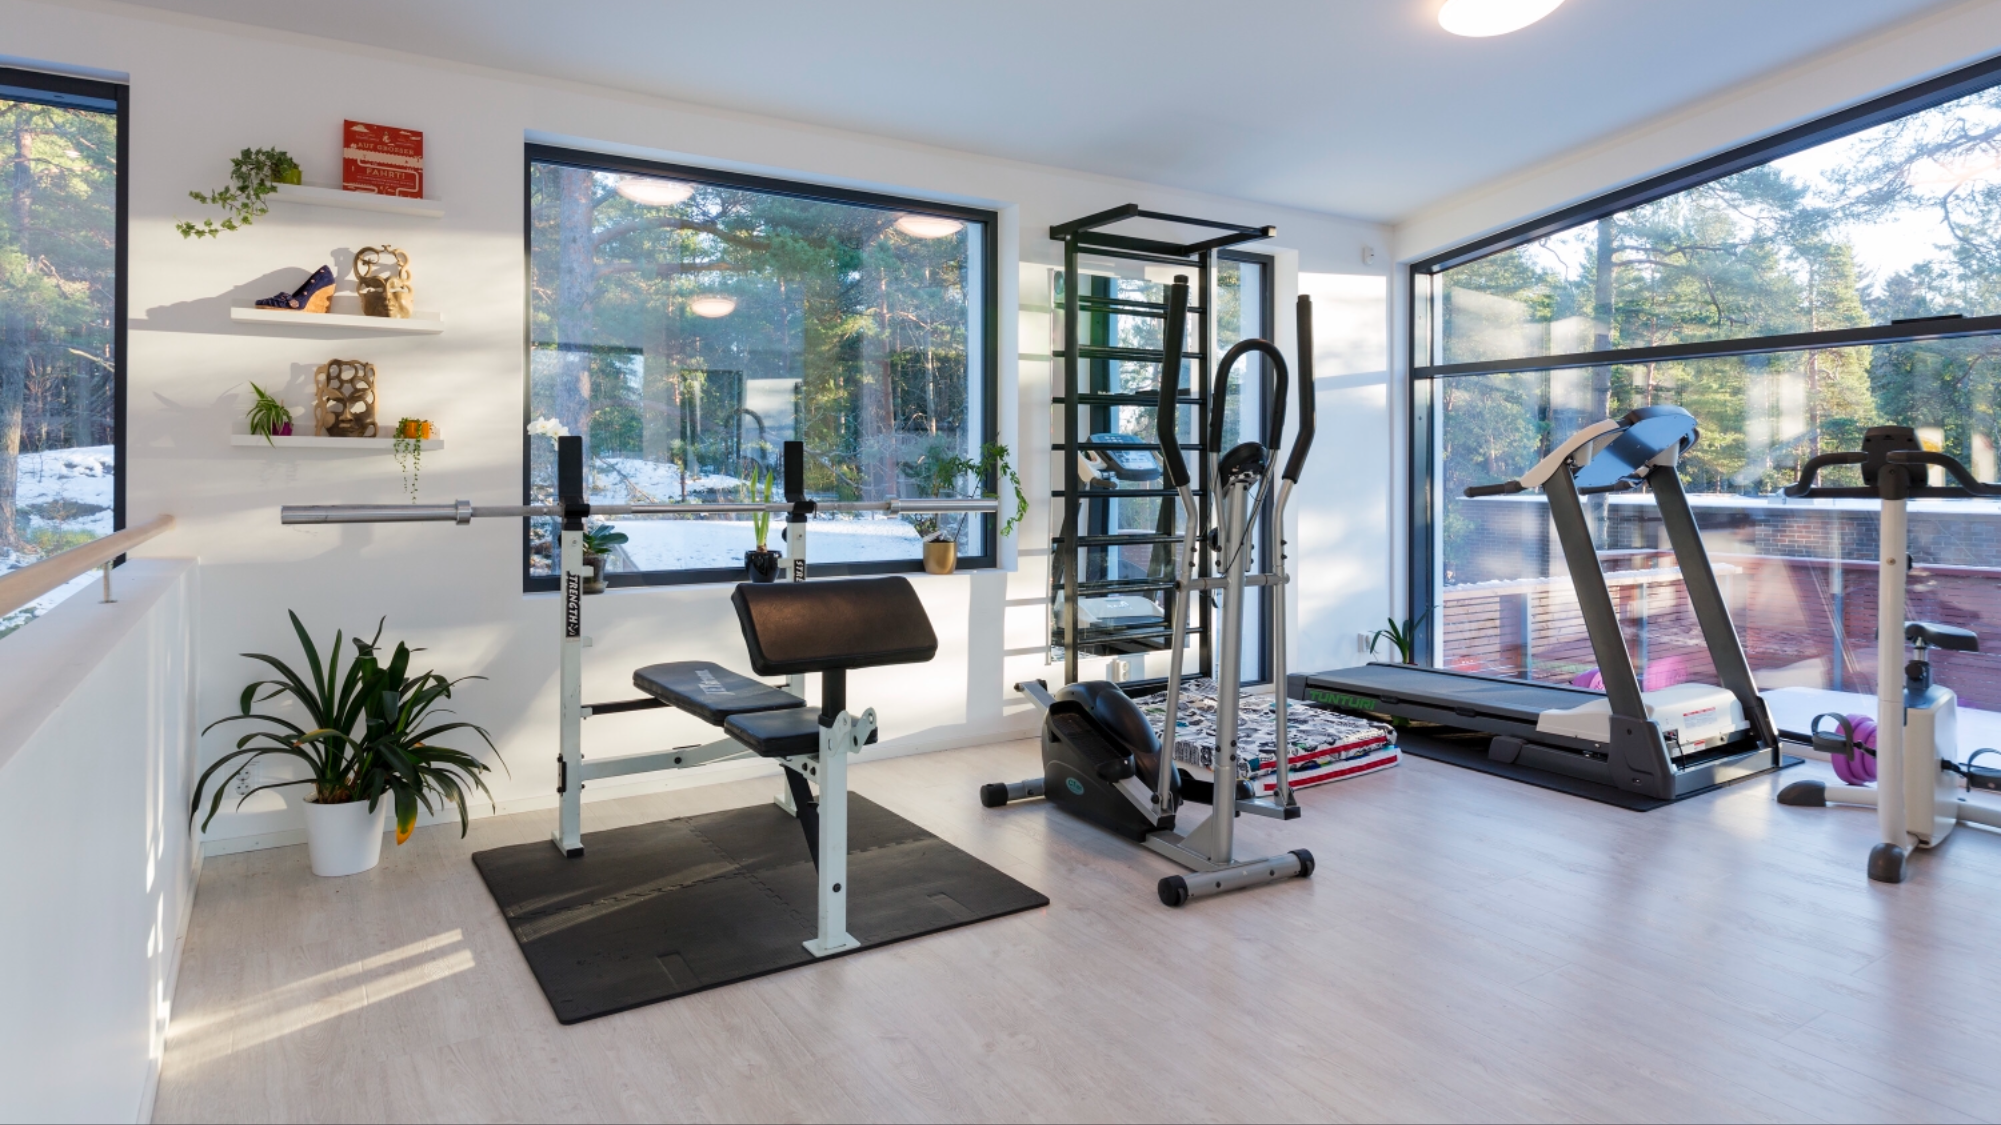 How to Find the Best Gym for Your Health Goals - Corpus